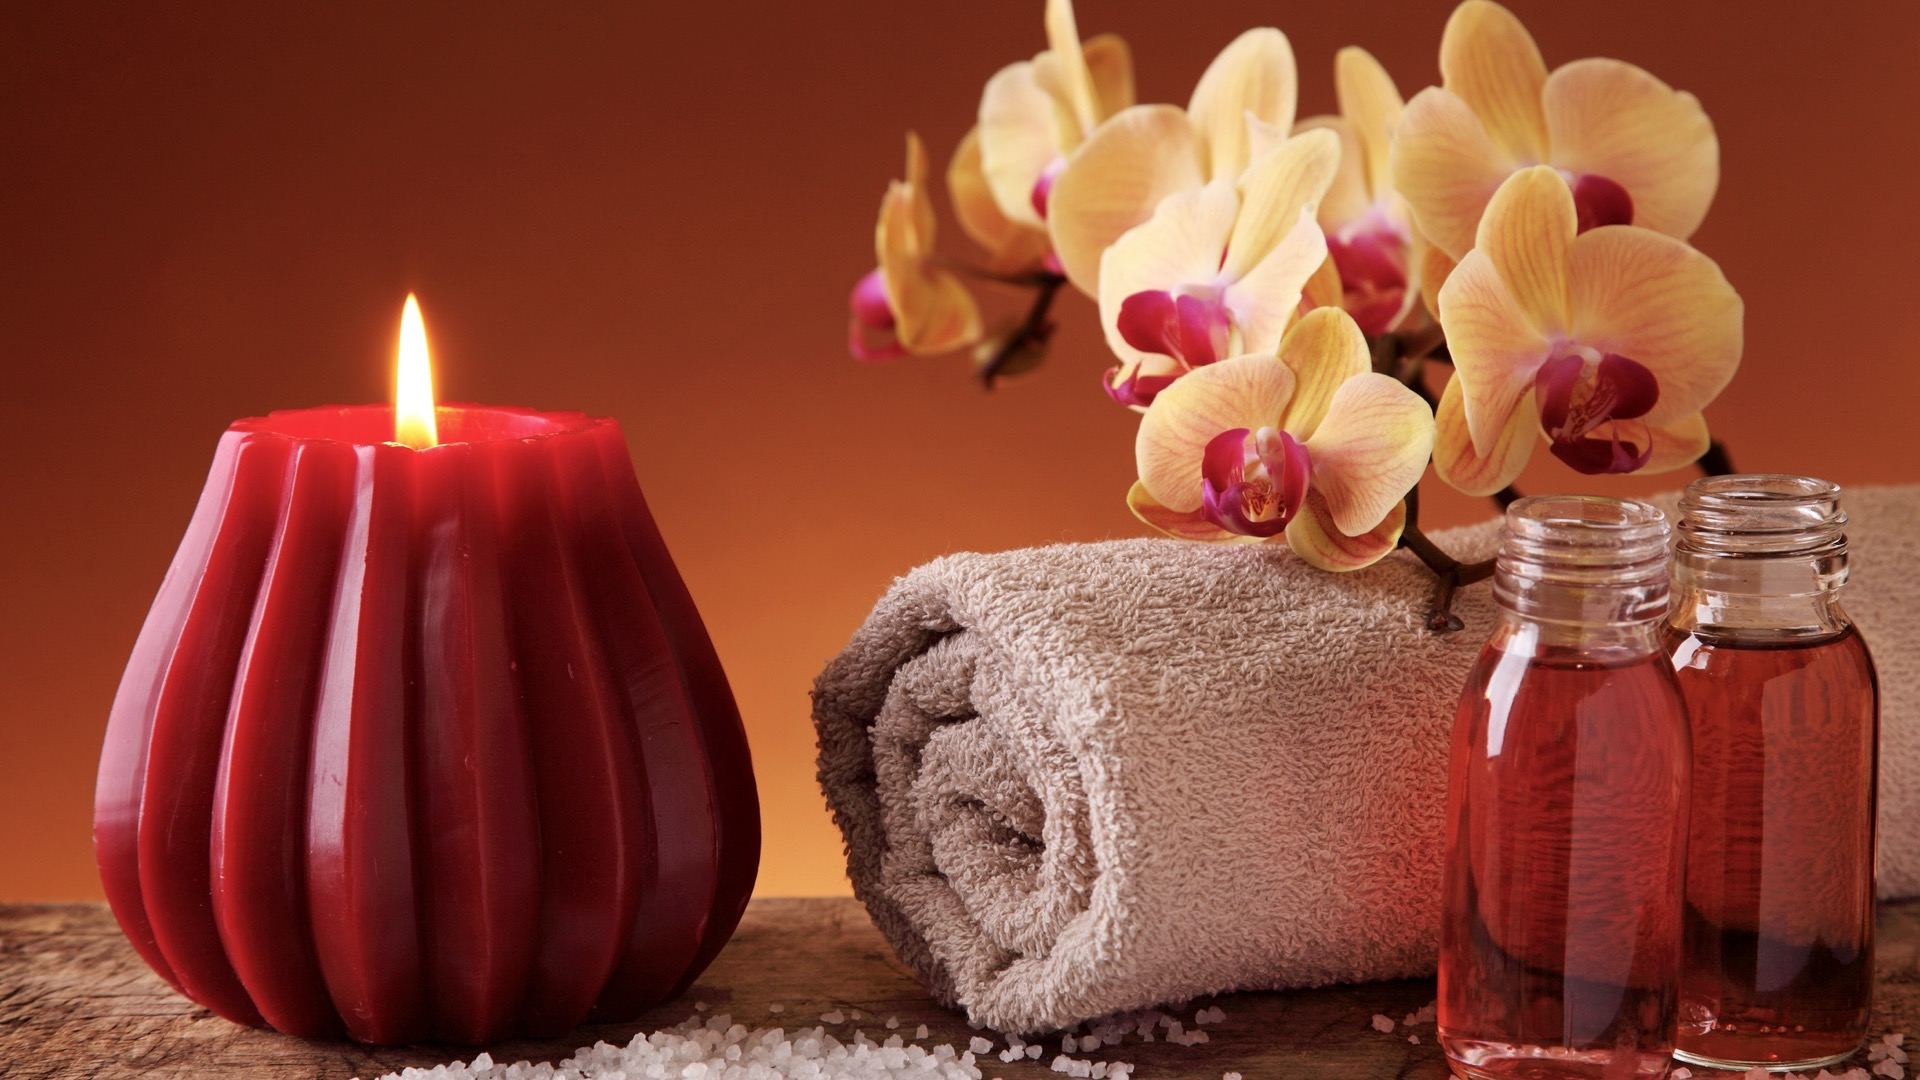 Spa_Candle_Maroon.jpg